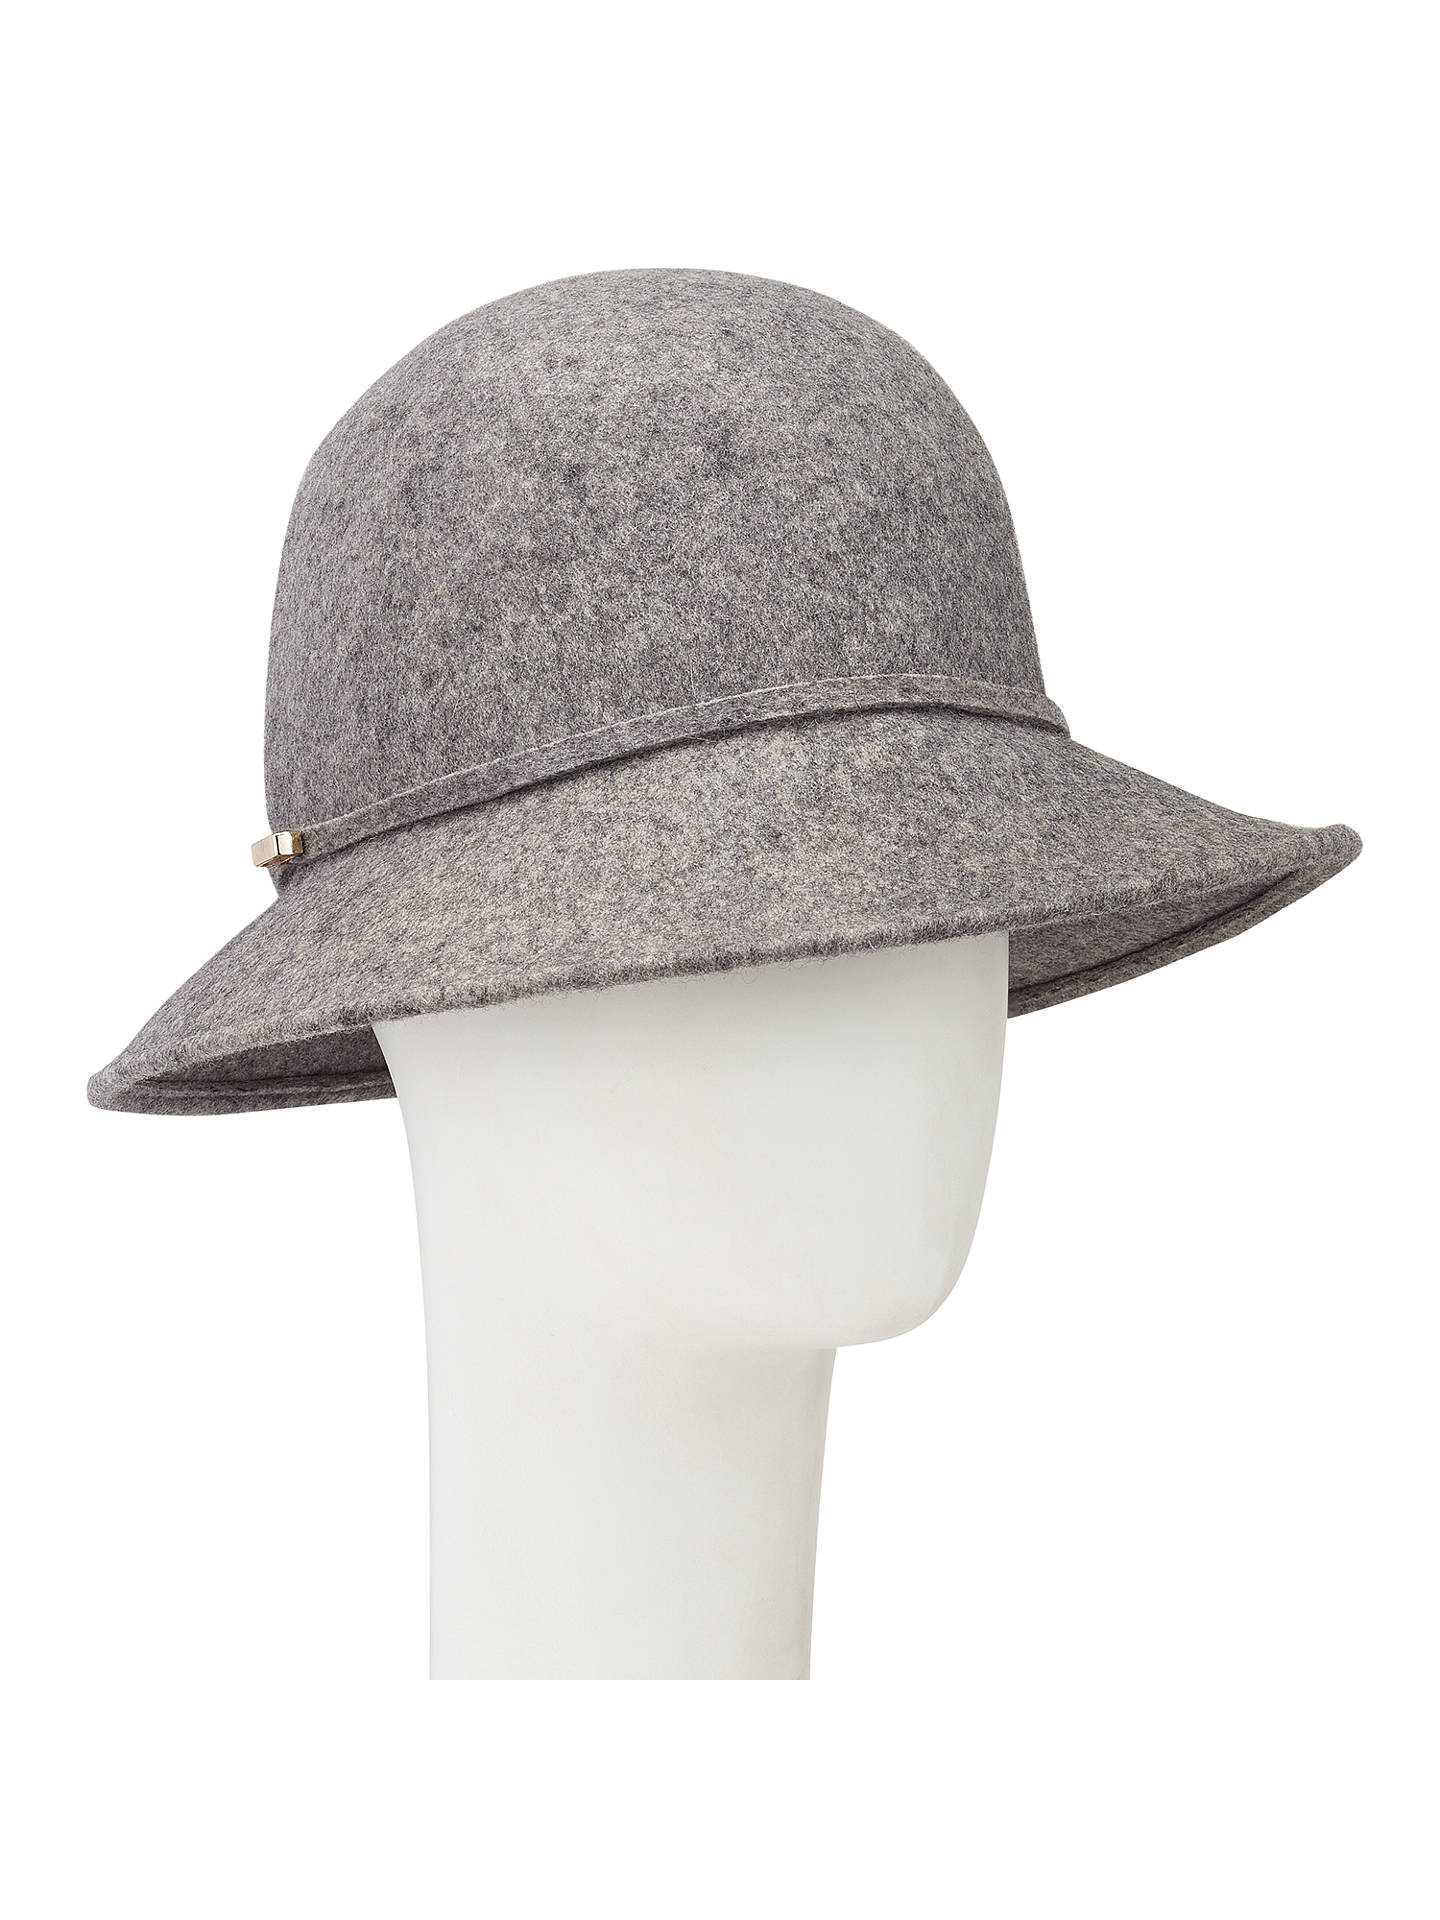 BuyJohn Lewis   Partners Mini Floppy Wool Felt Hat 09b4c93a9dc